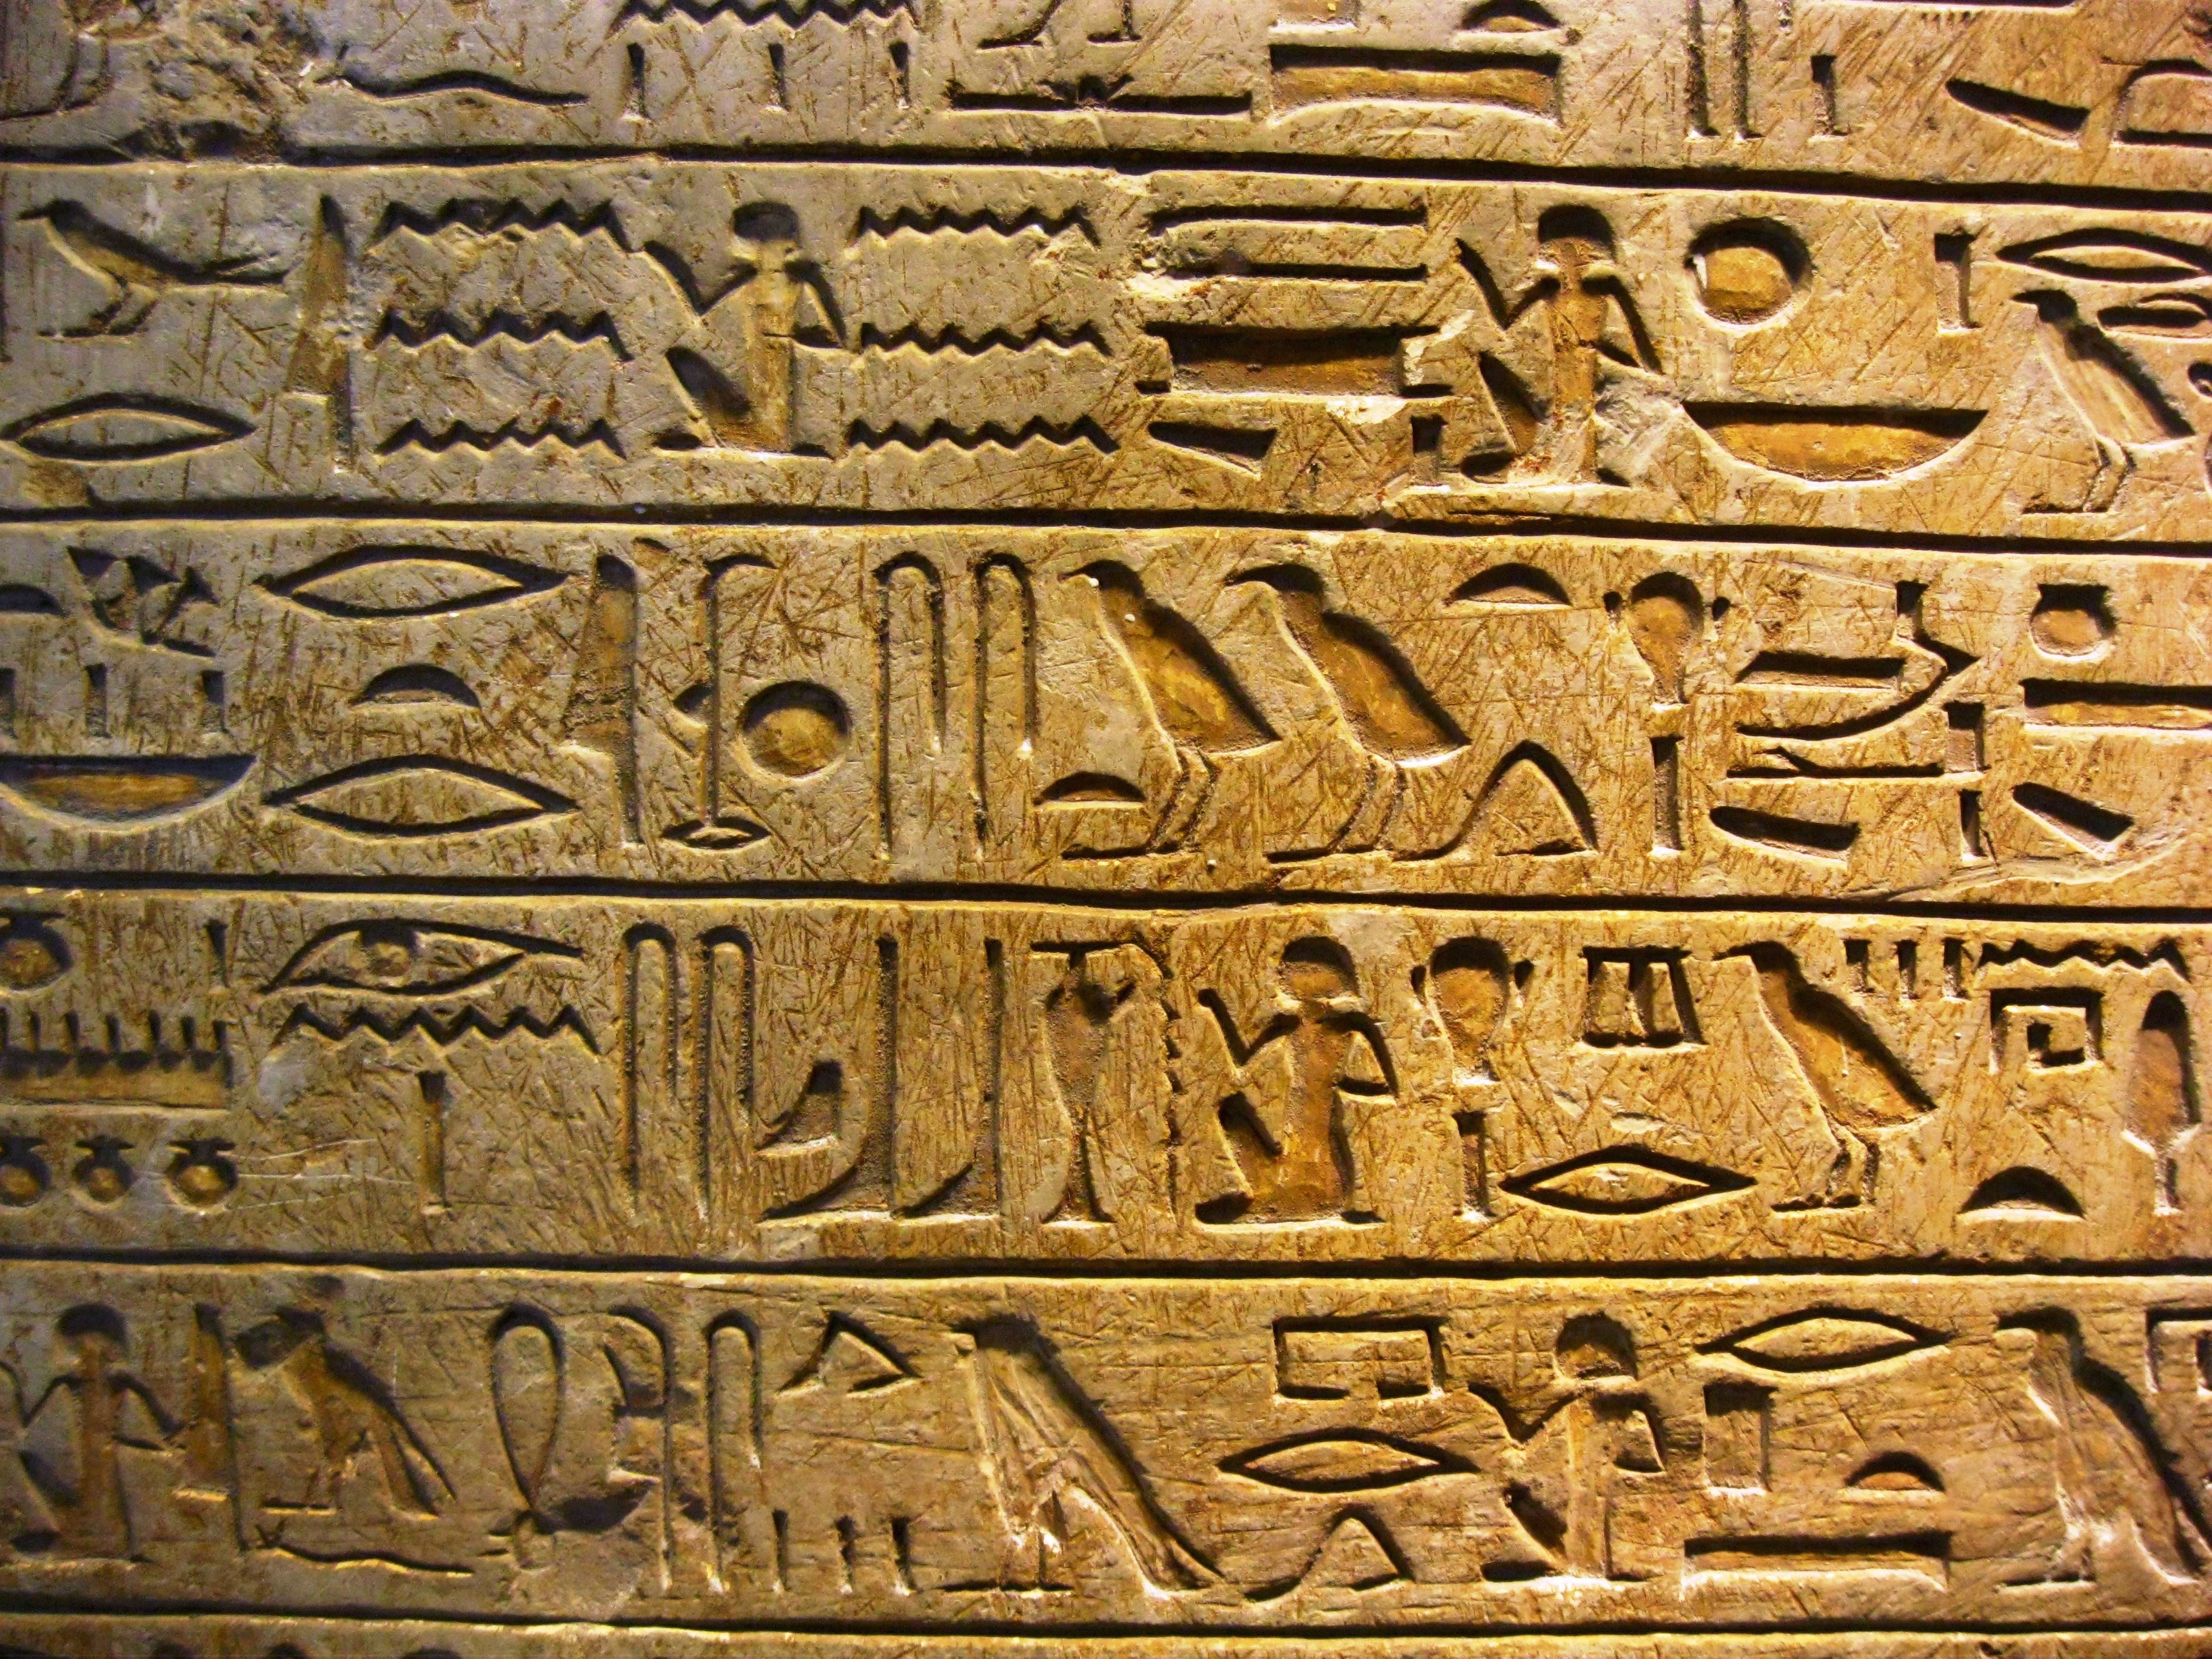 egyptian heiroglyphs (probably spelled it wrong.) i have always been